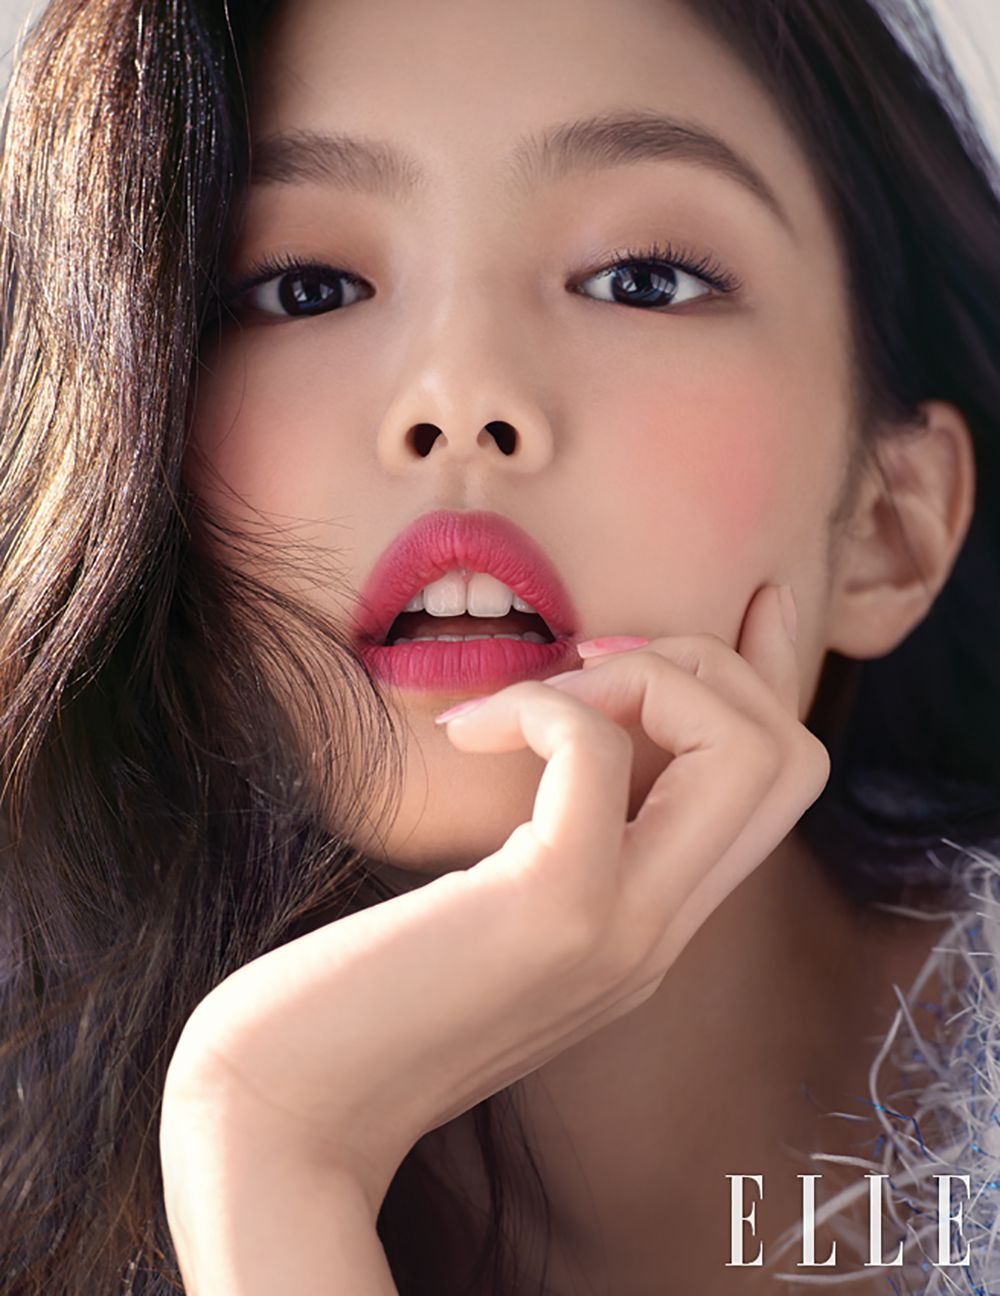 Blackpink S Jennie Features In Pictorial For Elle Korea March